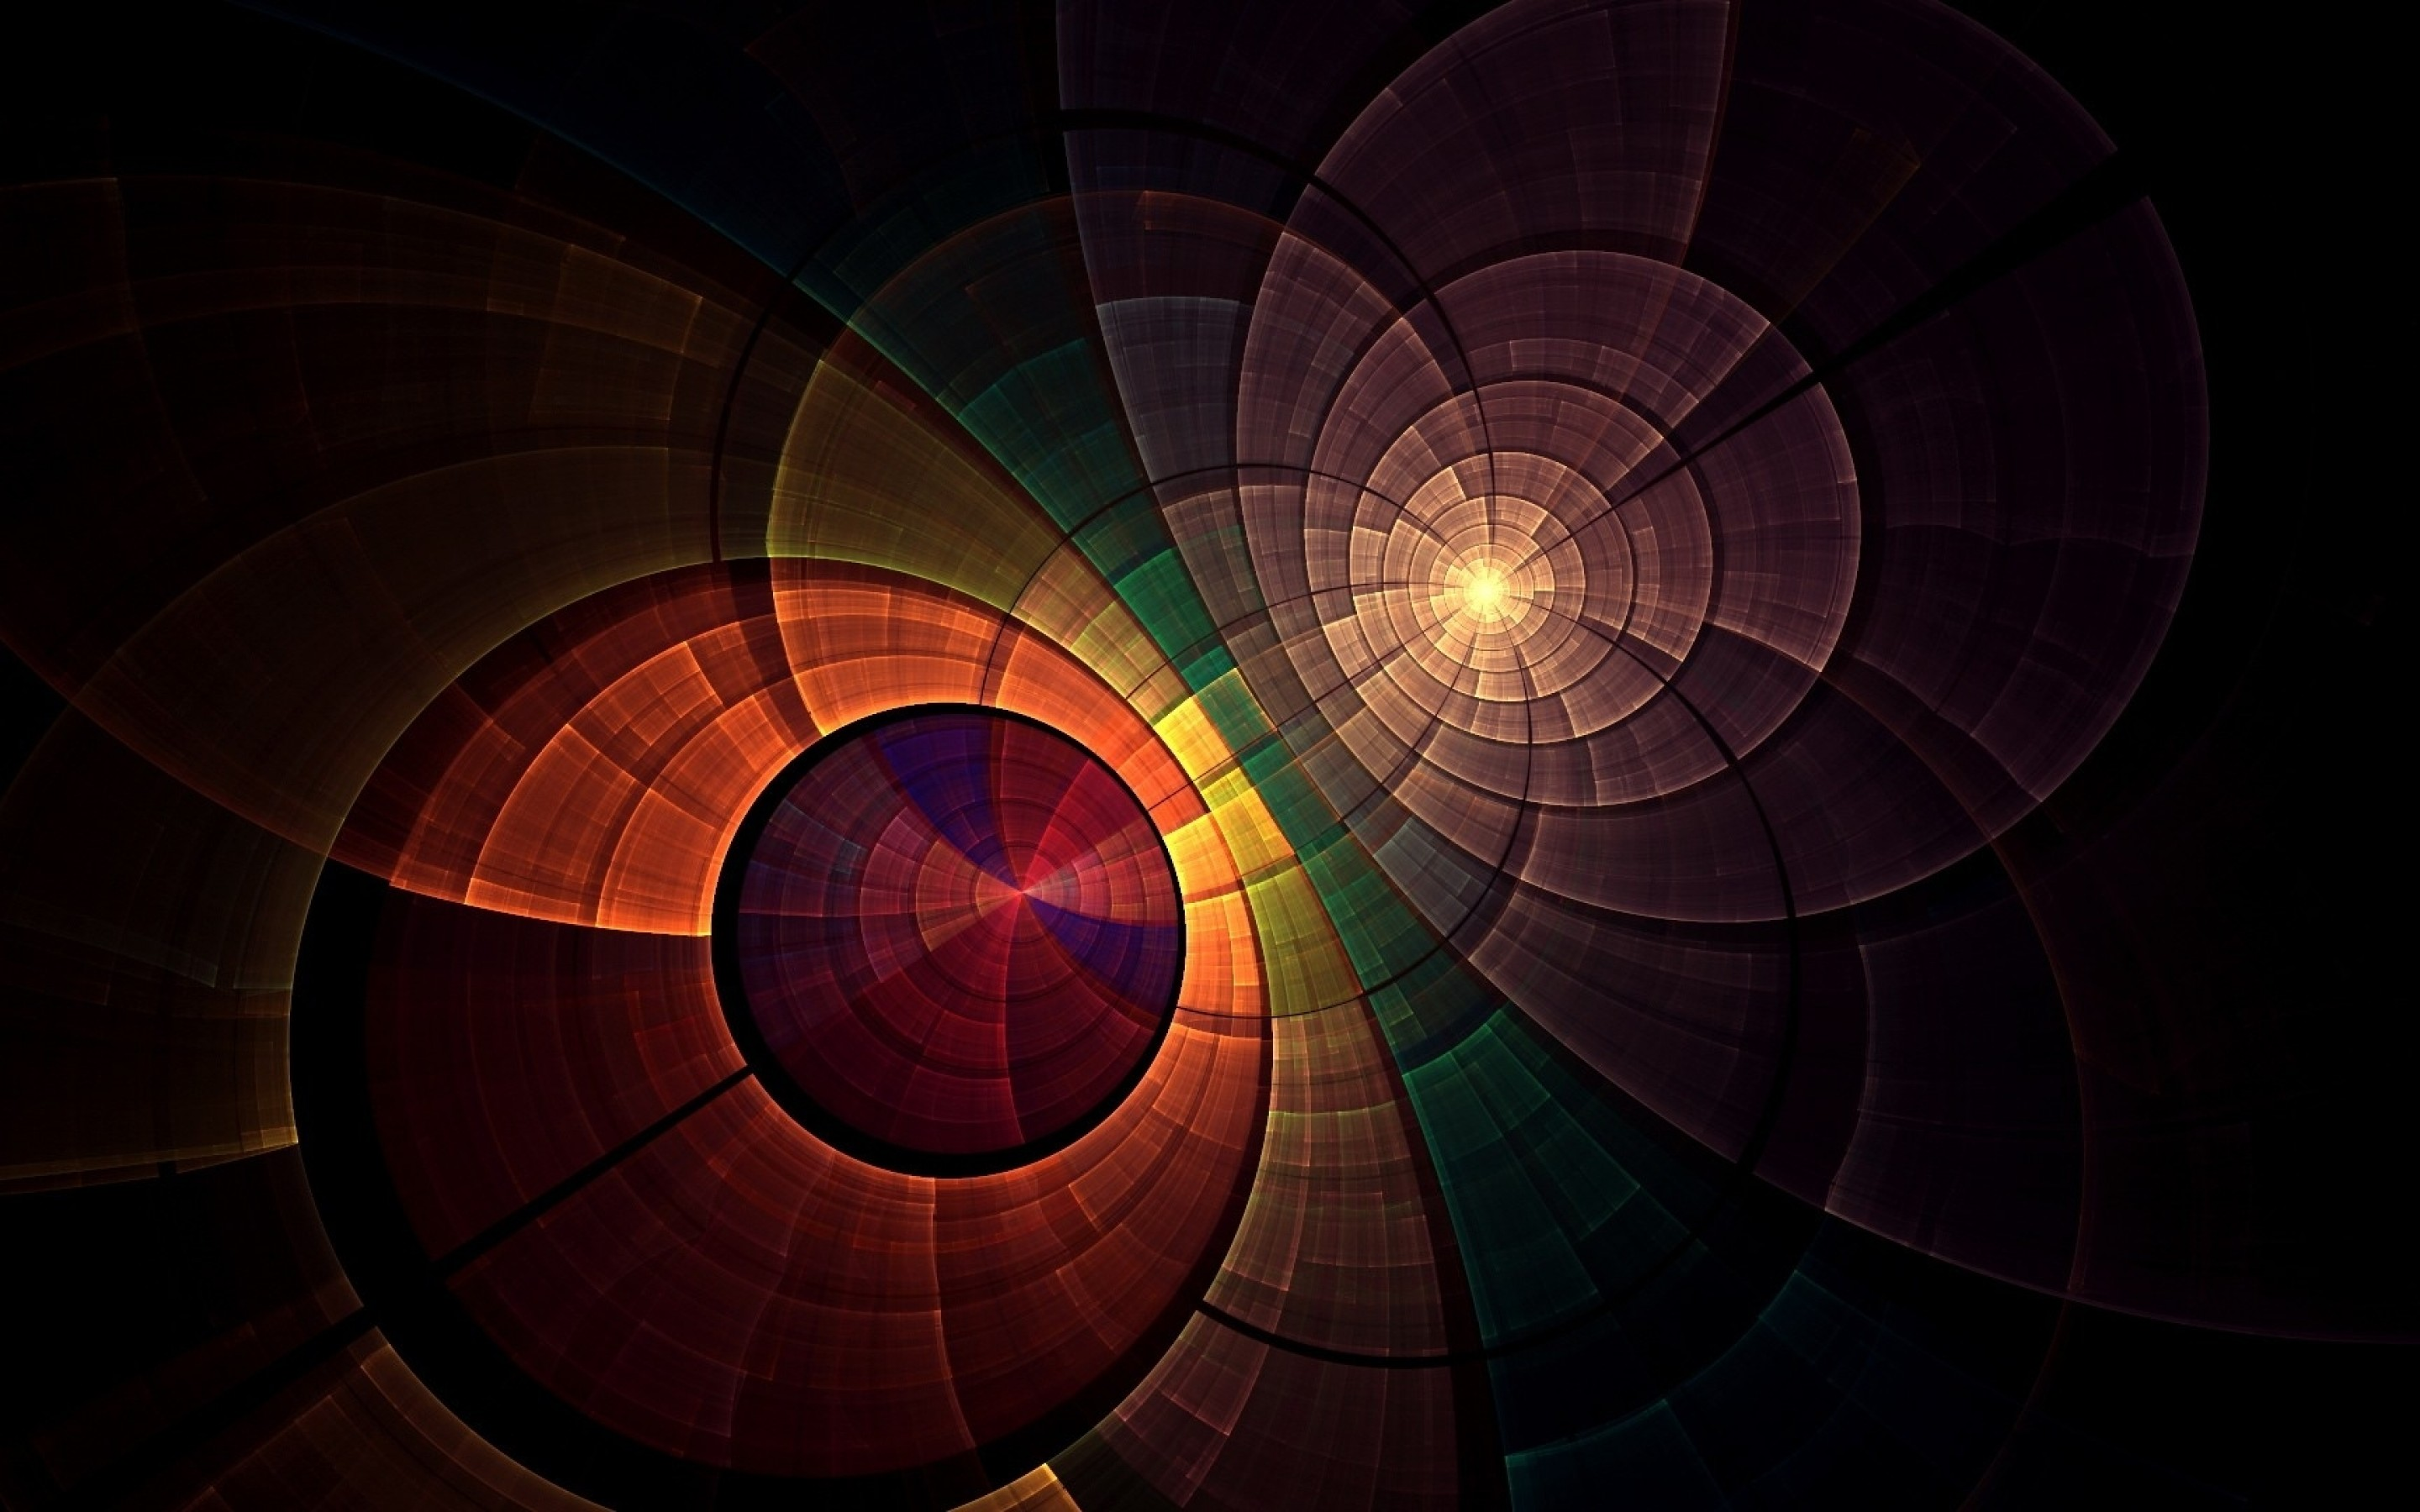 Abstract, Cirkel, Overlappende   Gratis Achtergronden Wallpaper